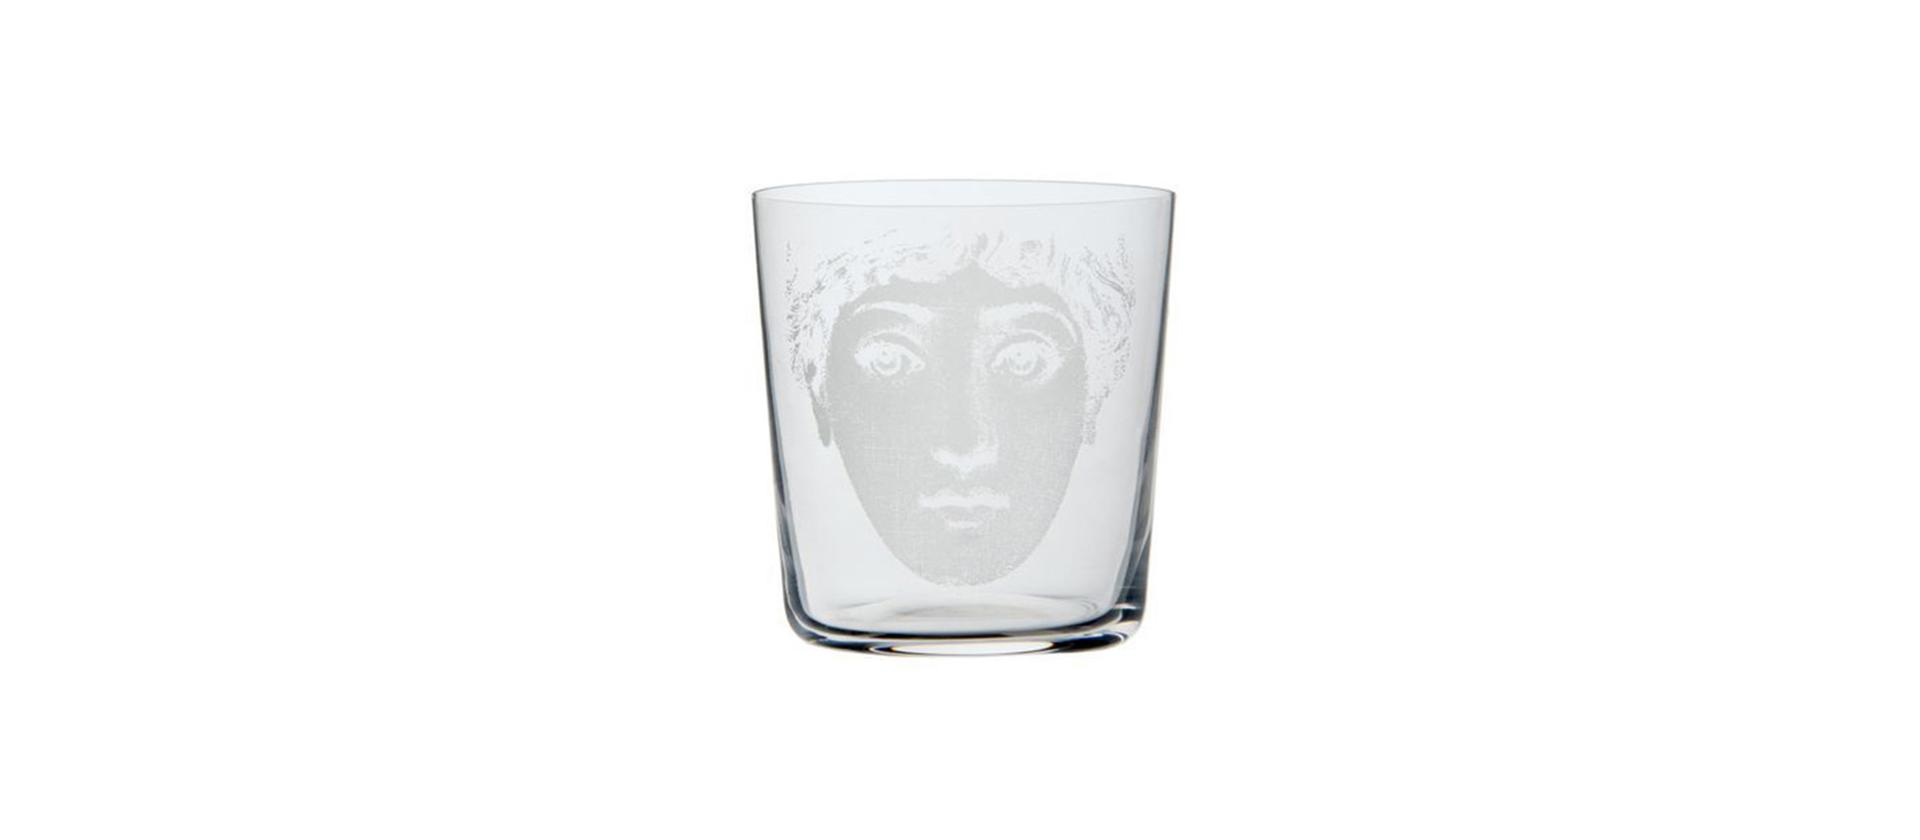 Small glass Fornasetti Tet a tet She big